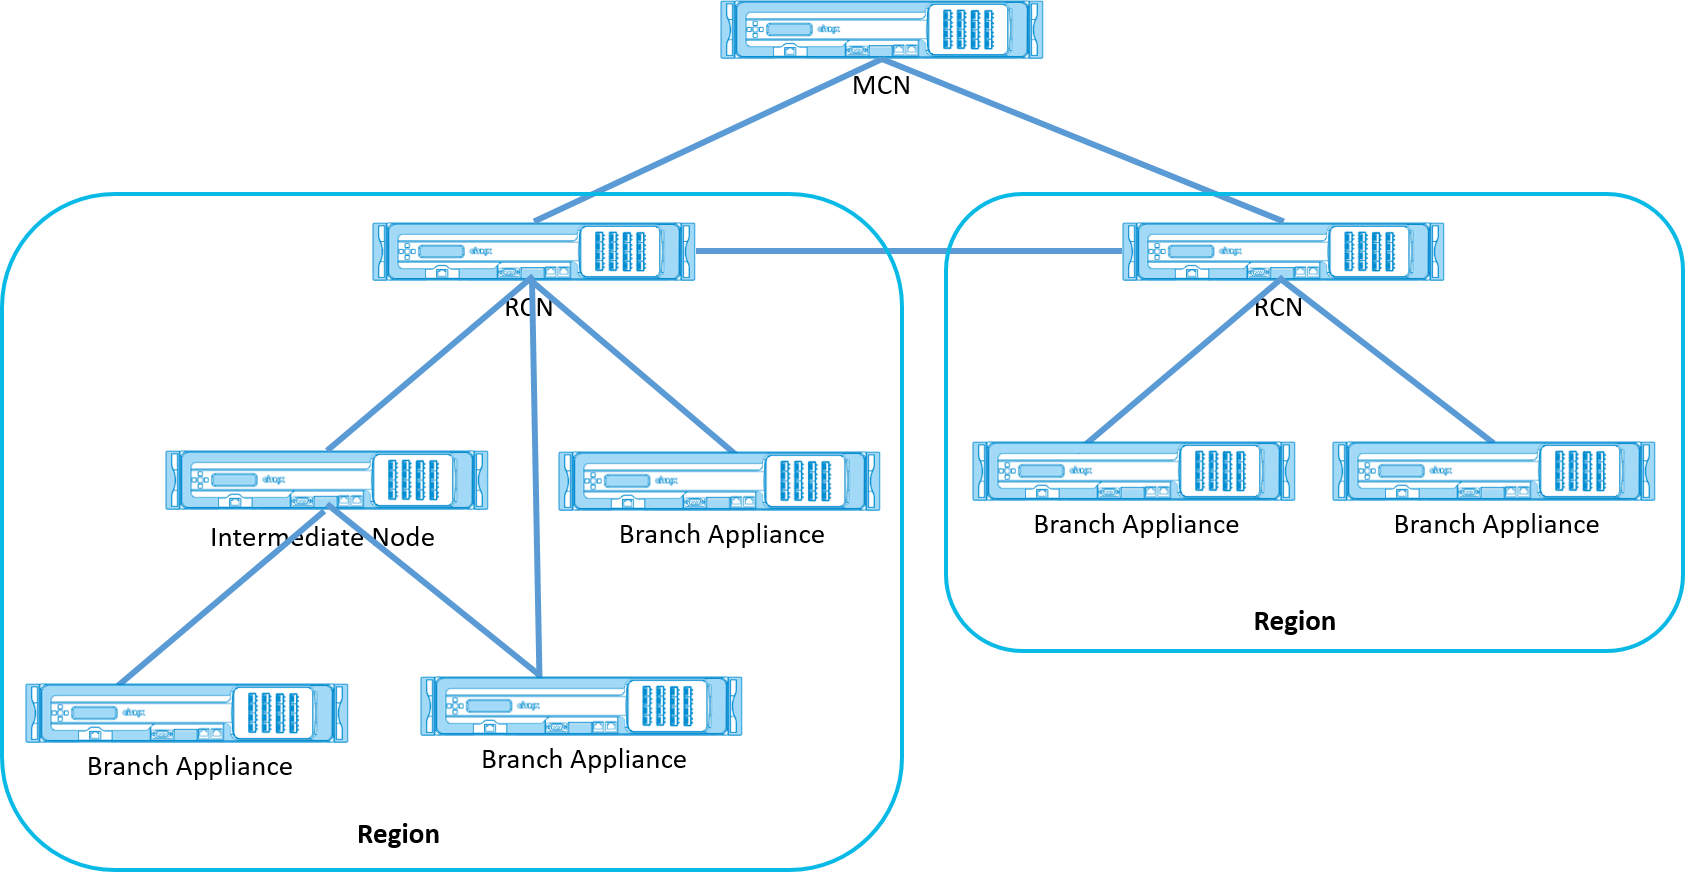 Multi-region deployment topology